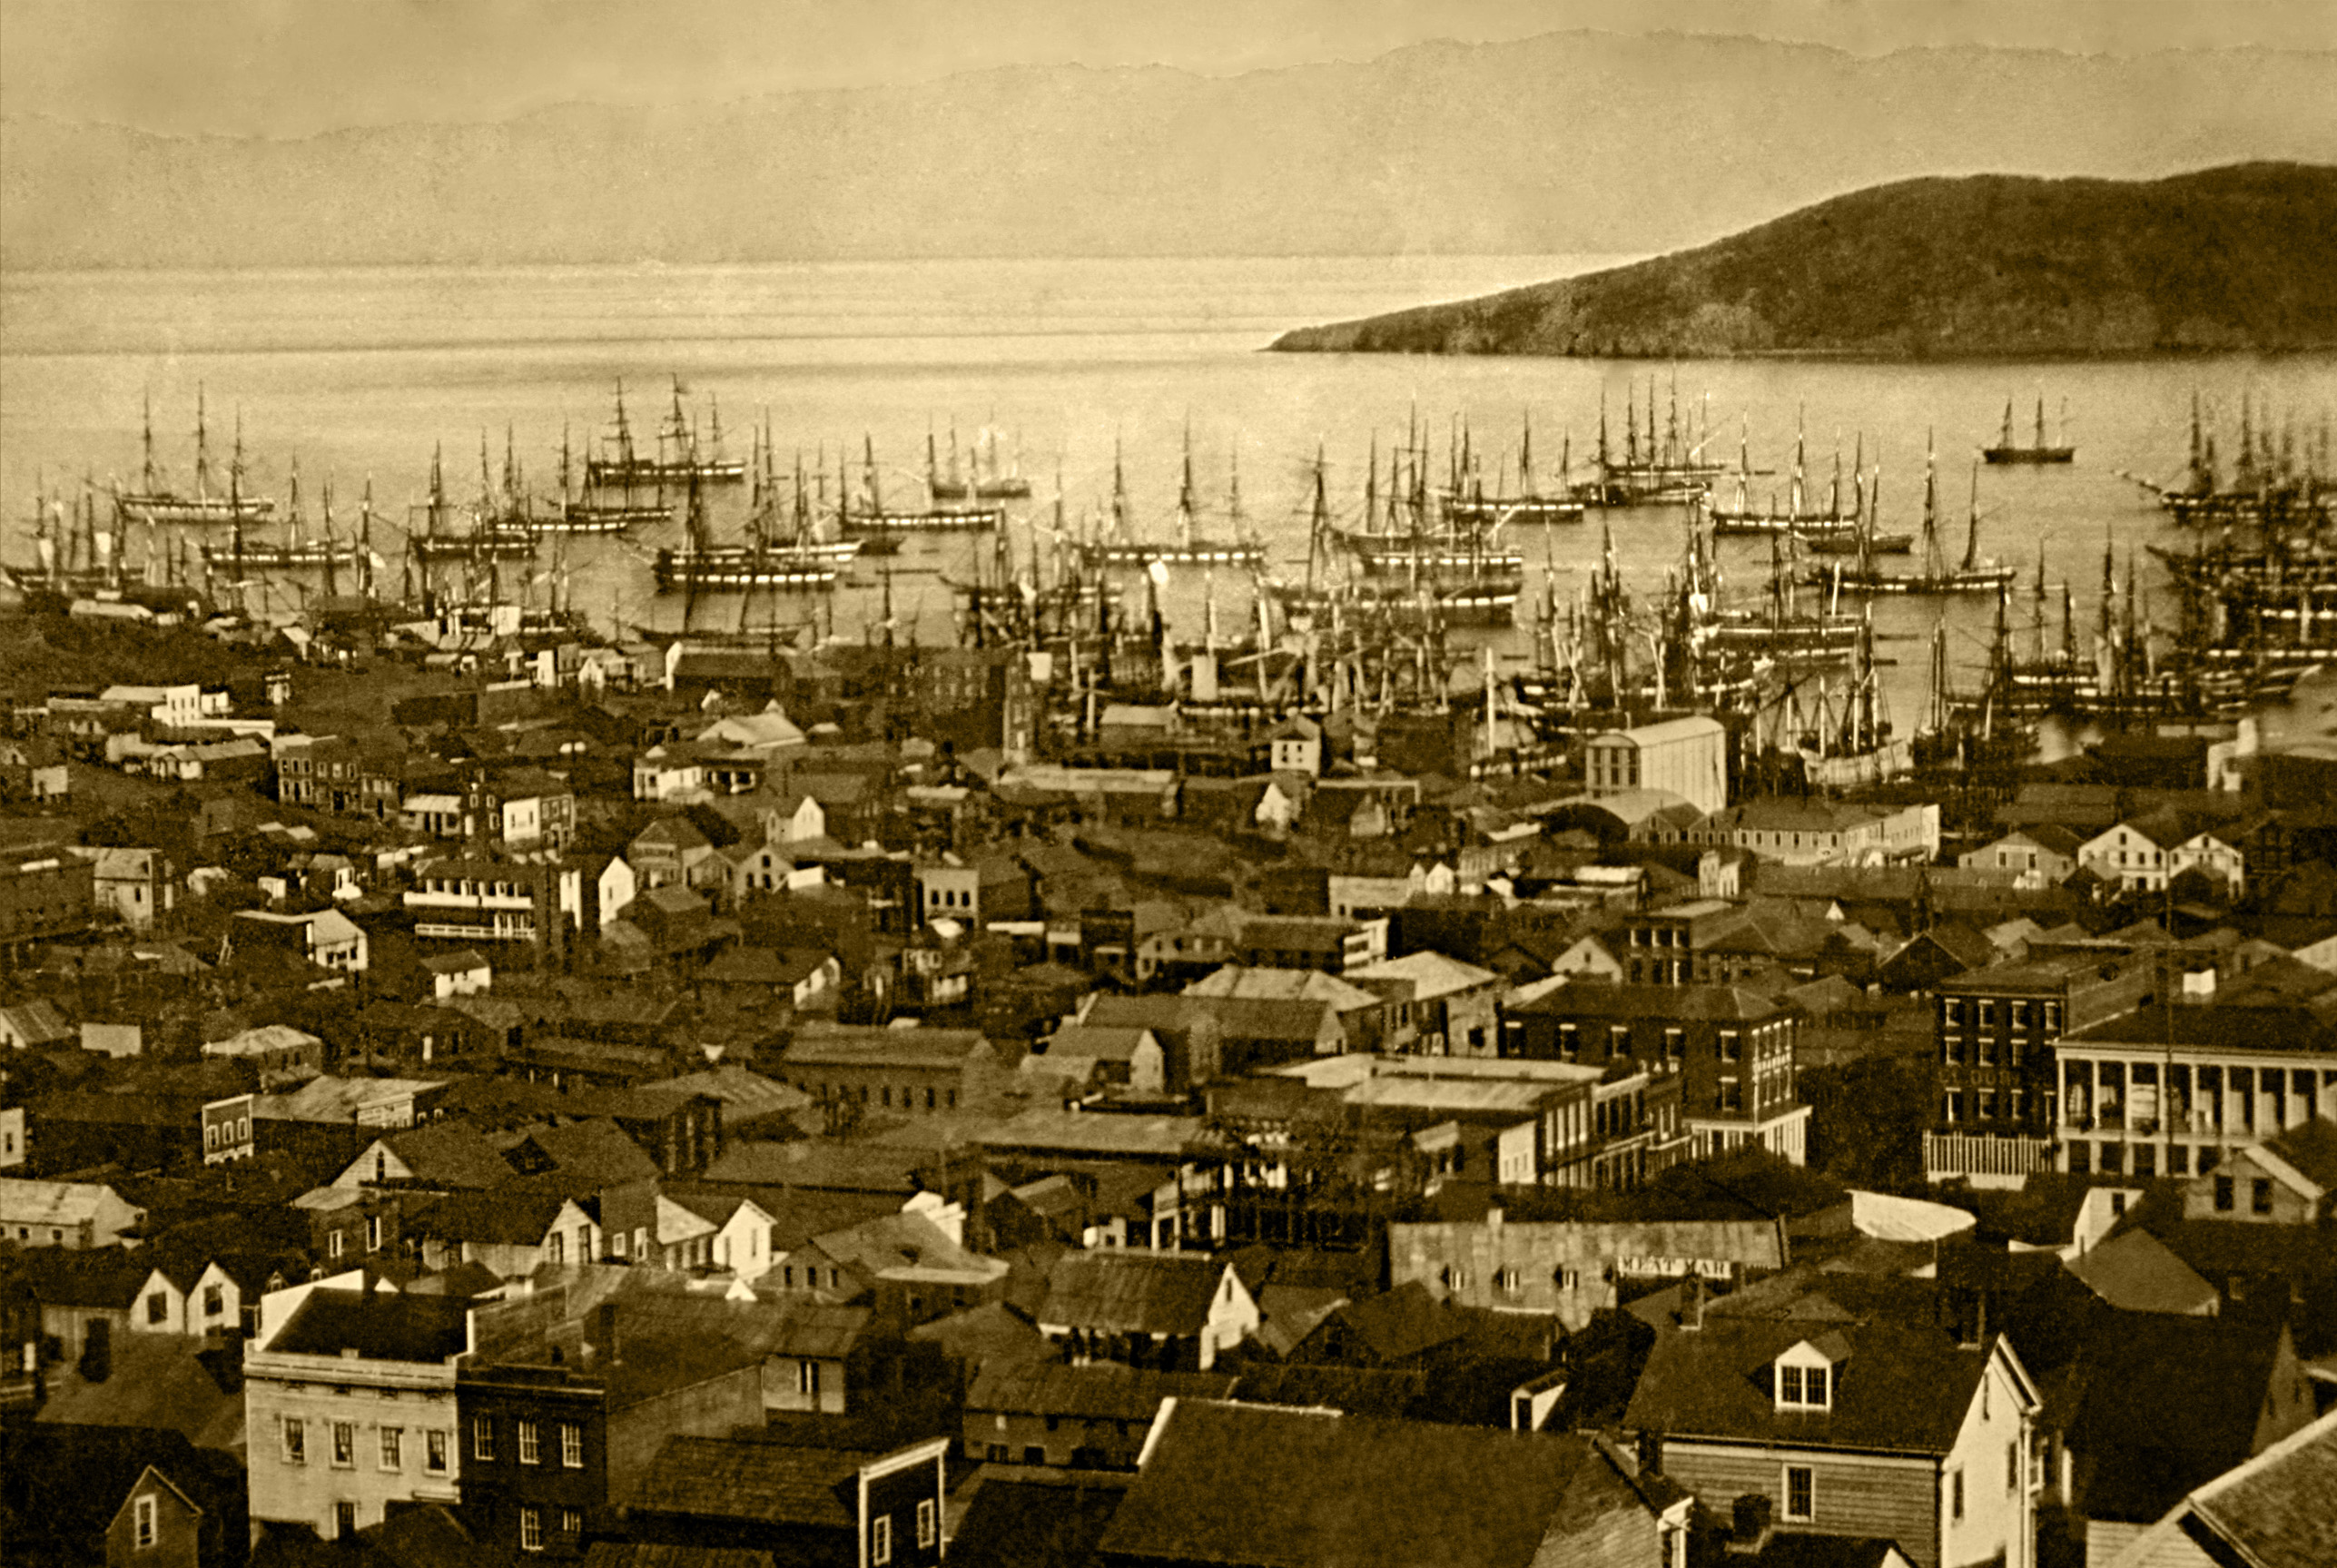 San Francisco harbor at Yerba Buena Cove in 1850 or 1851 — with Yerba Buena Island, and Berkeley Hills, in the background.